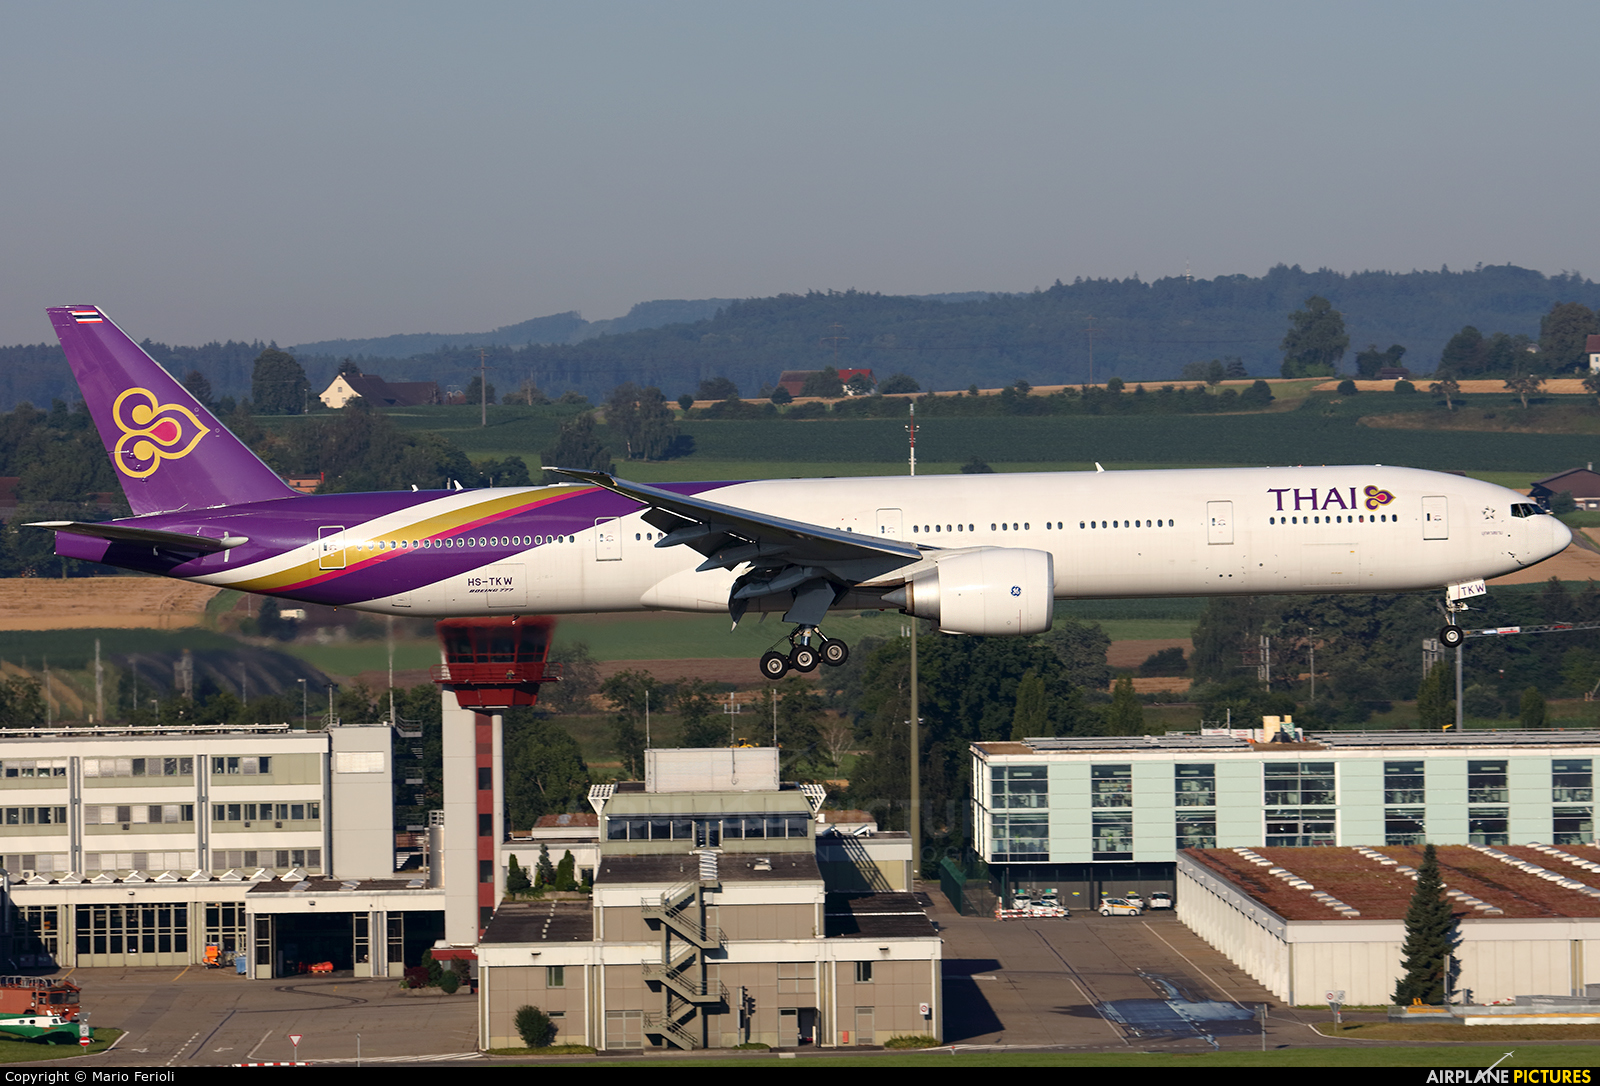 Thai Airways HS-TKW aircraft at Zurich